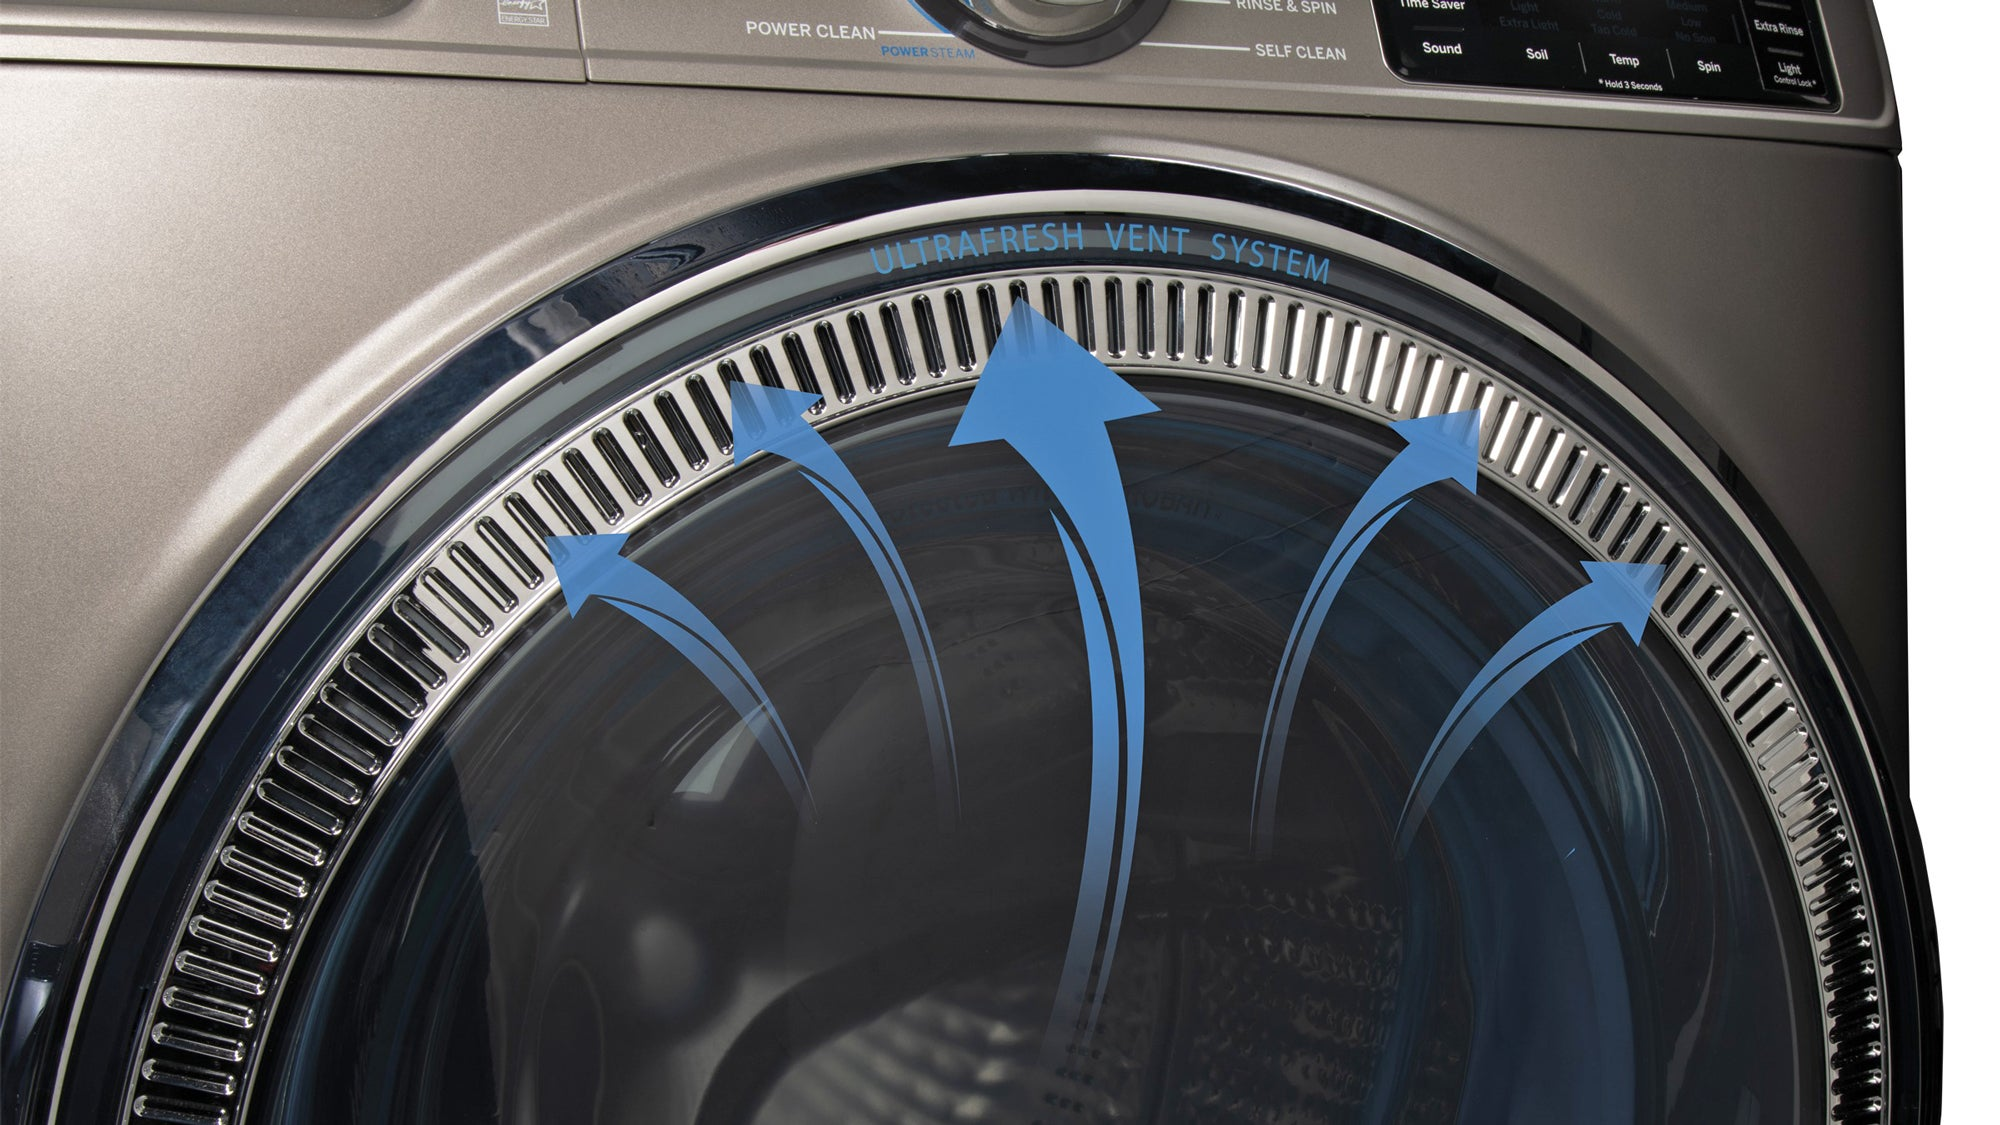 Here's A Solution For Finally Fixing Stinky Washing Machines